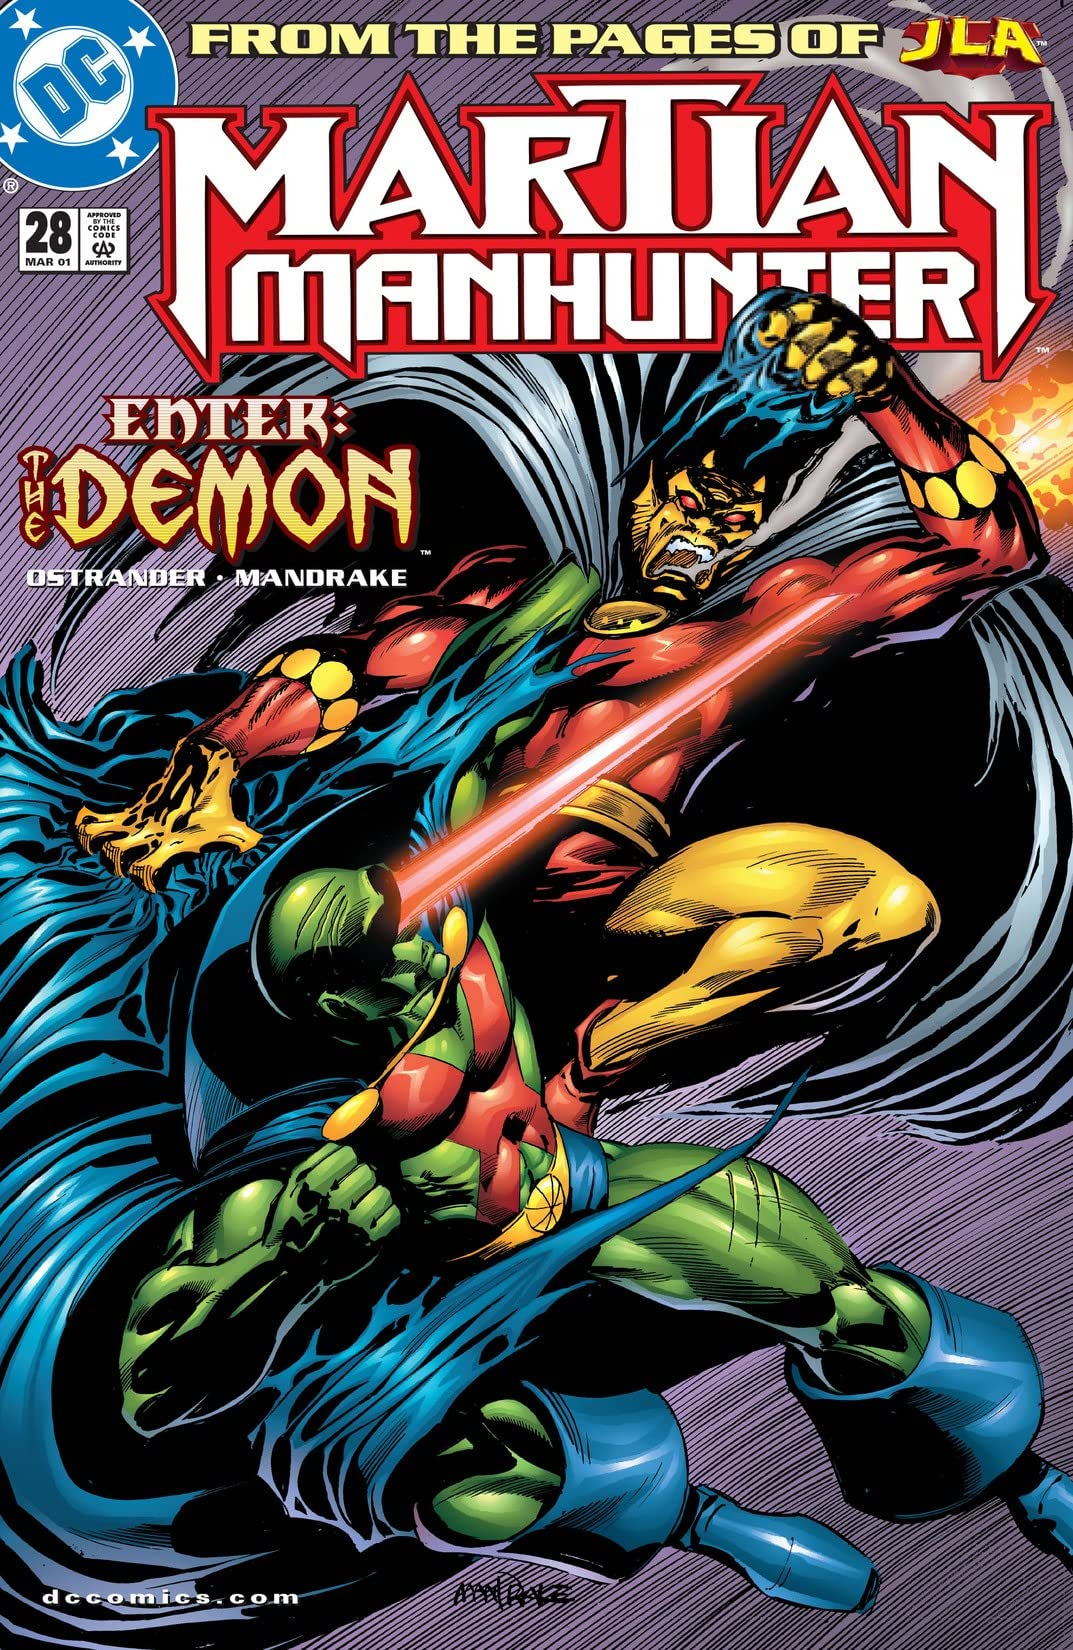 Martian Manhunter (1998-2001) #28